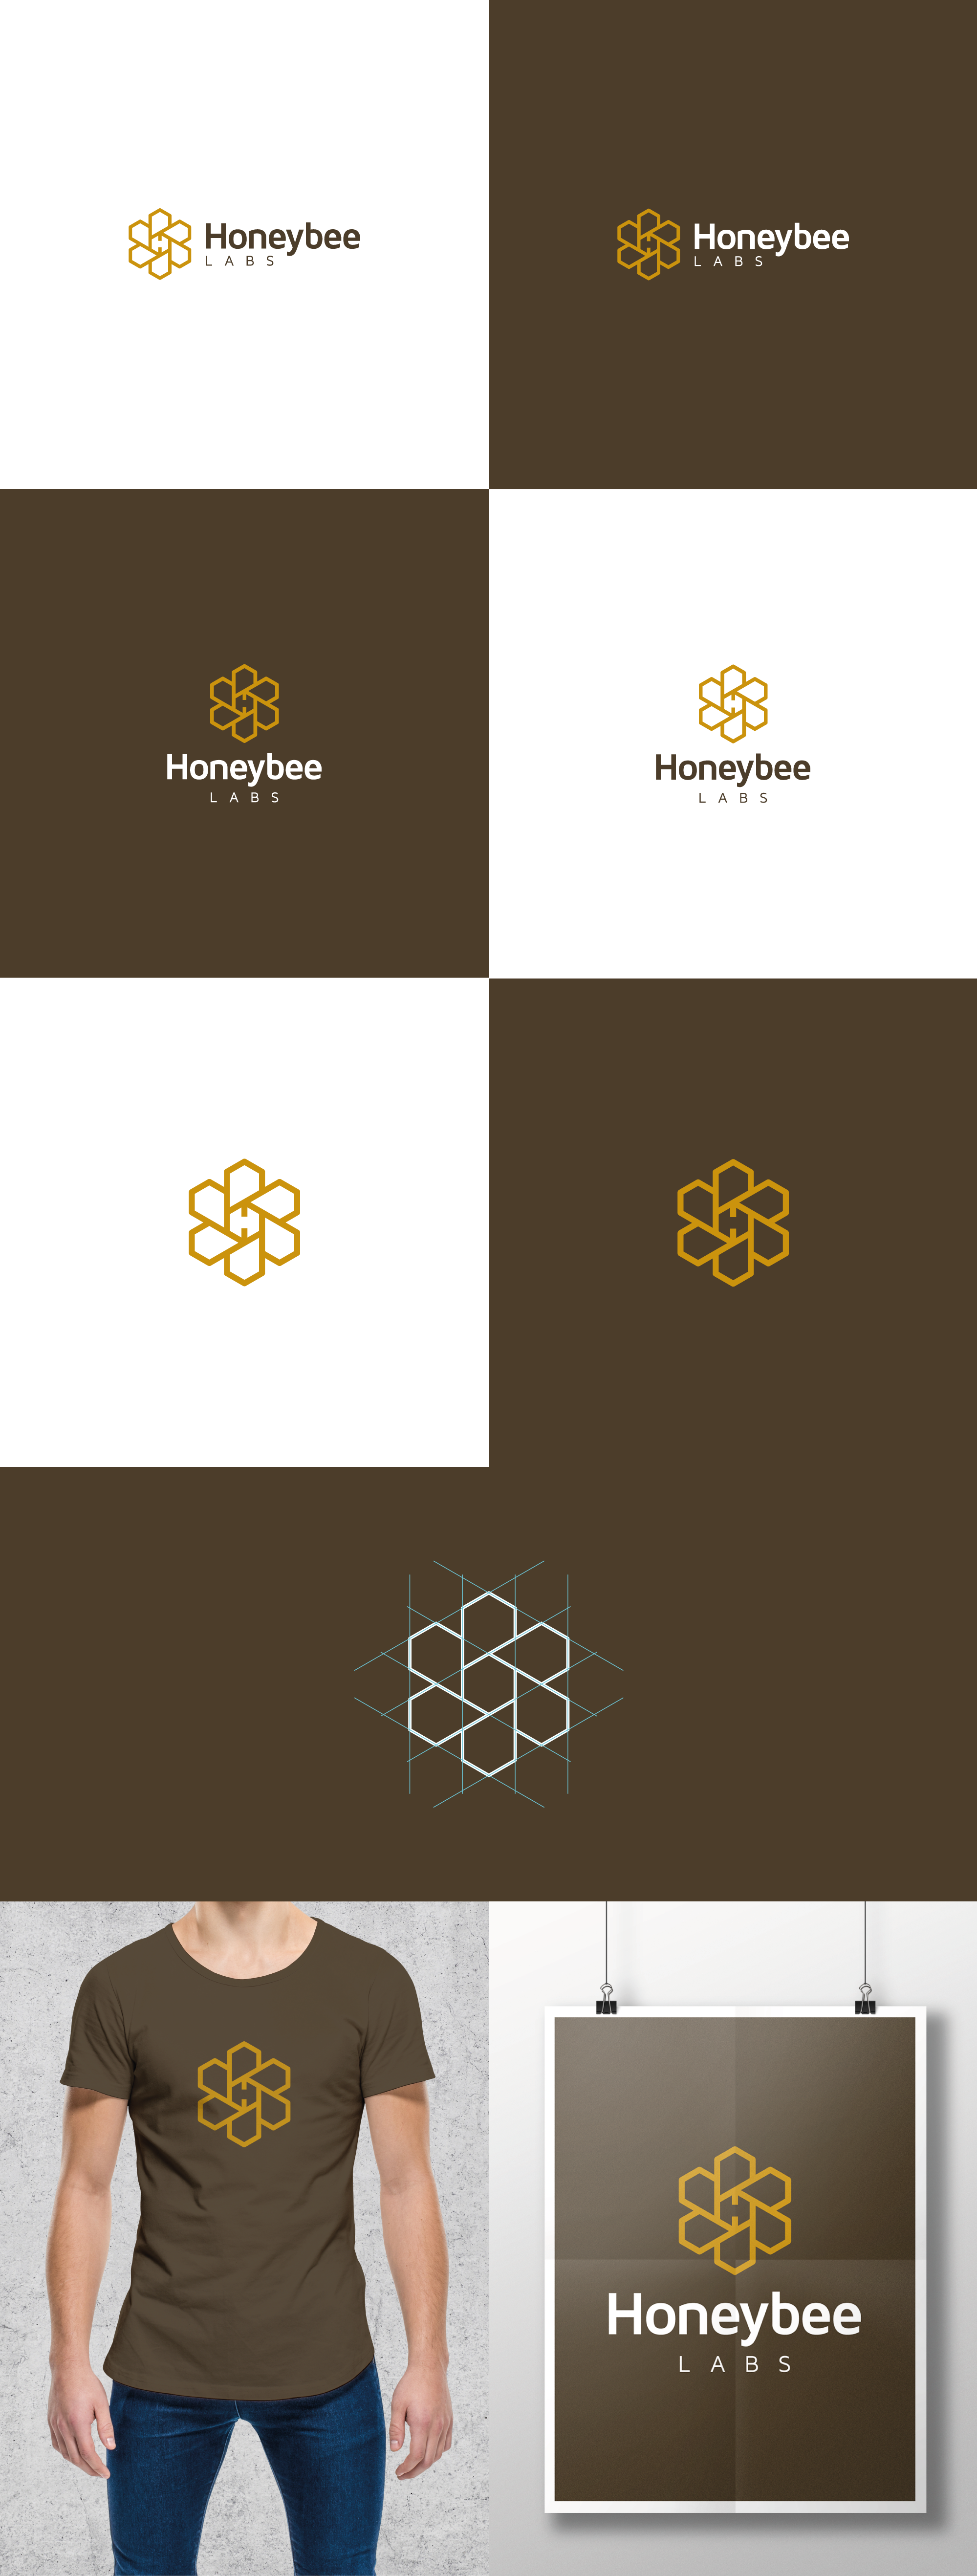 Logo design and business card for a small data science and mapping company.